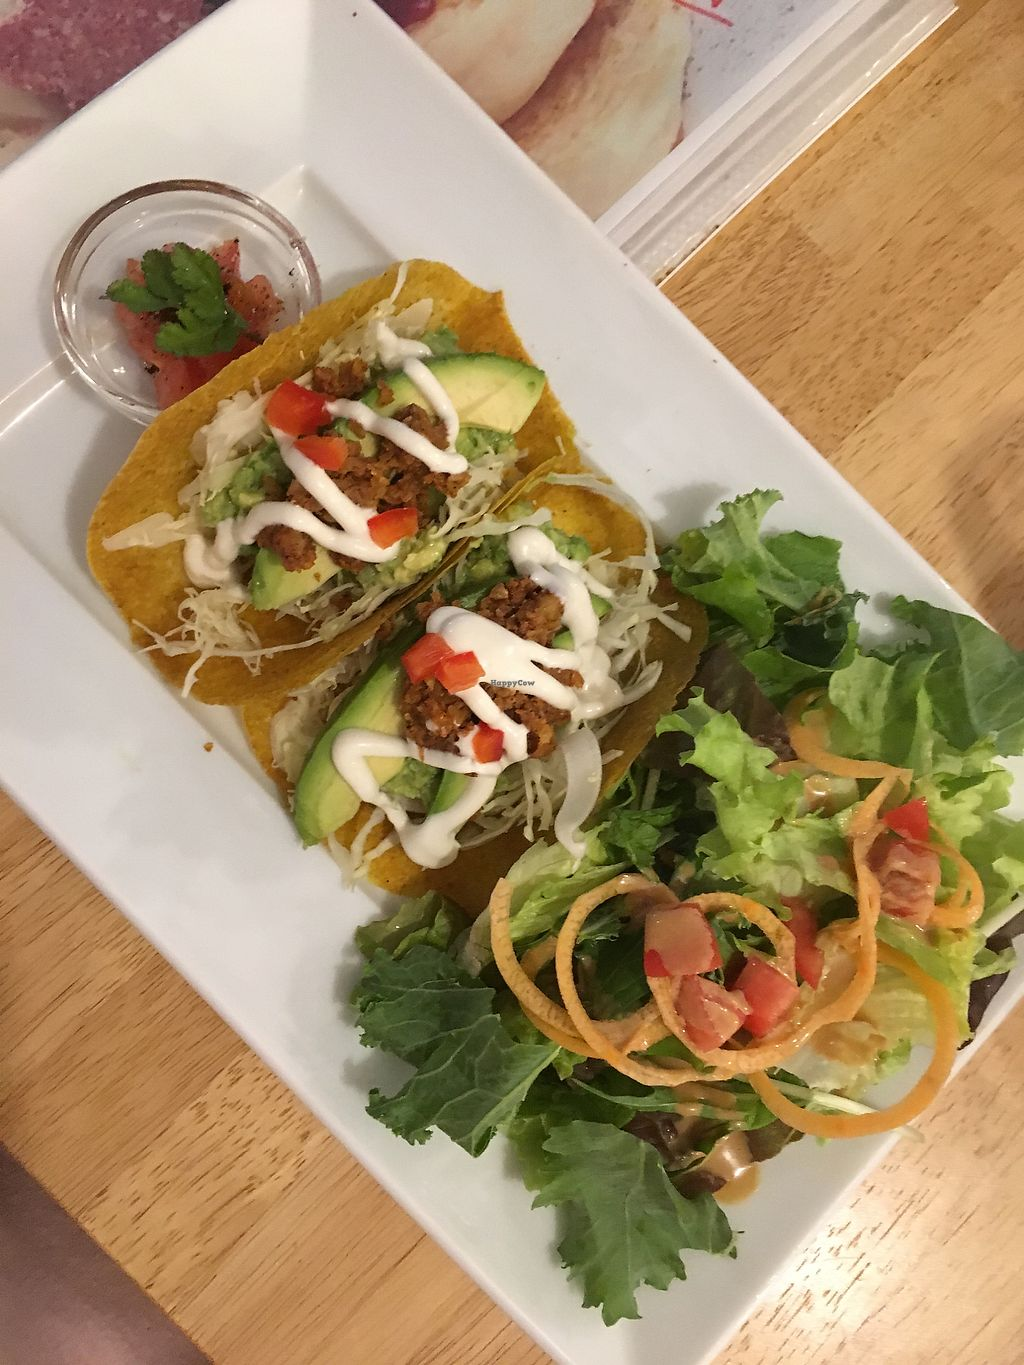 """Photo of Raw8 Cafe  by <a href=""""/members/profile/BecBarke"""">BecBarke</a> <br/>Raw tacos!  <br/> April 21, 2018  - <a href='/contact/abuse/image/30371/388839'>Report</a>"""